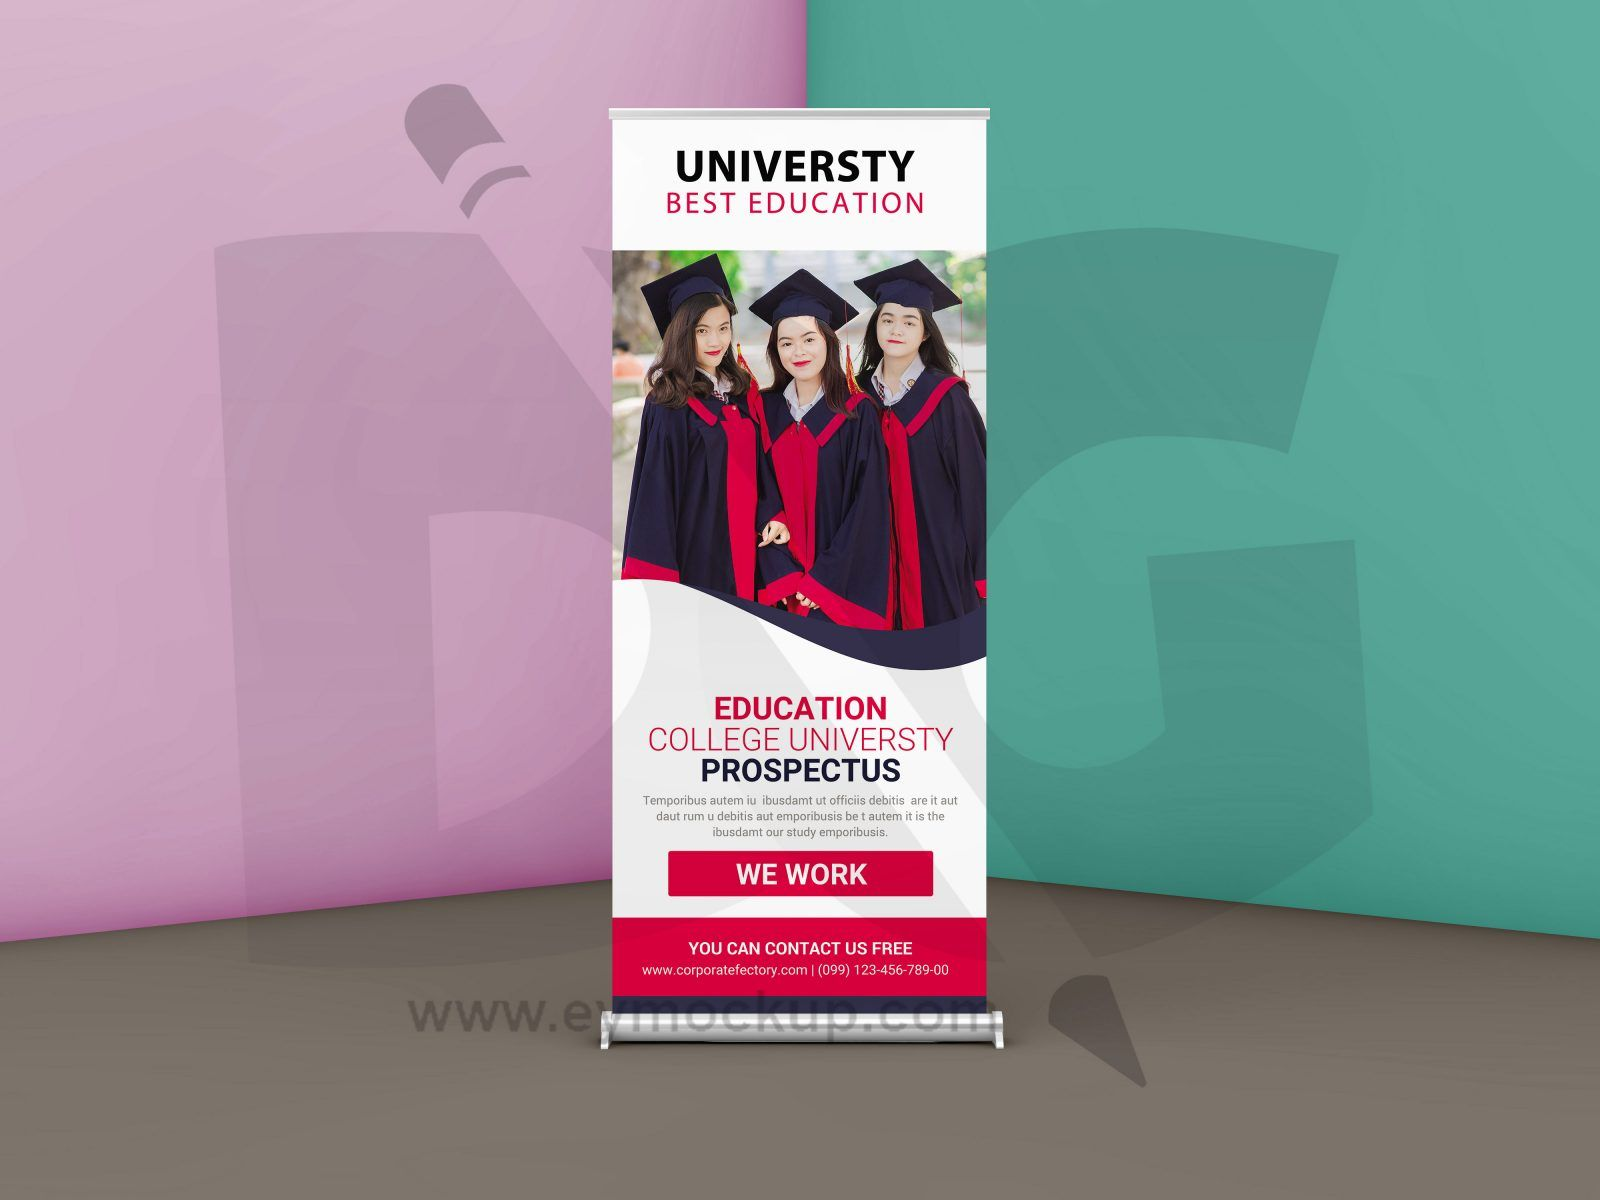 Education Related Roll Up Banner Psd Mockup Available For Free Education Banner Psd Mockup Education Banner Banner Template Banner